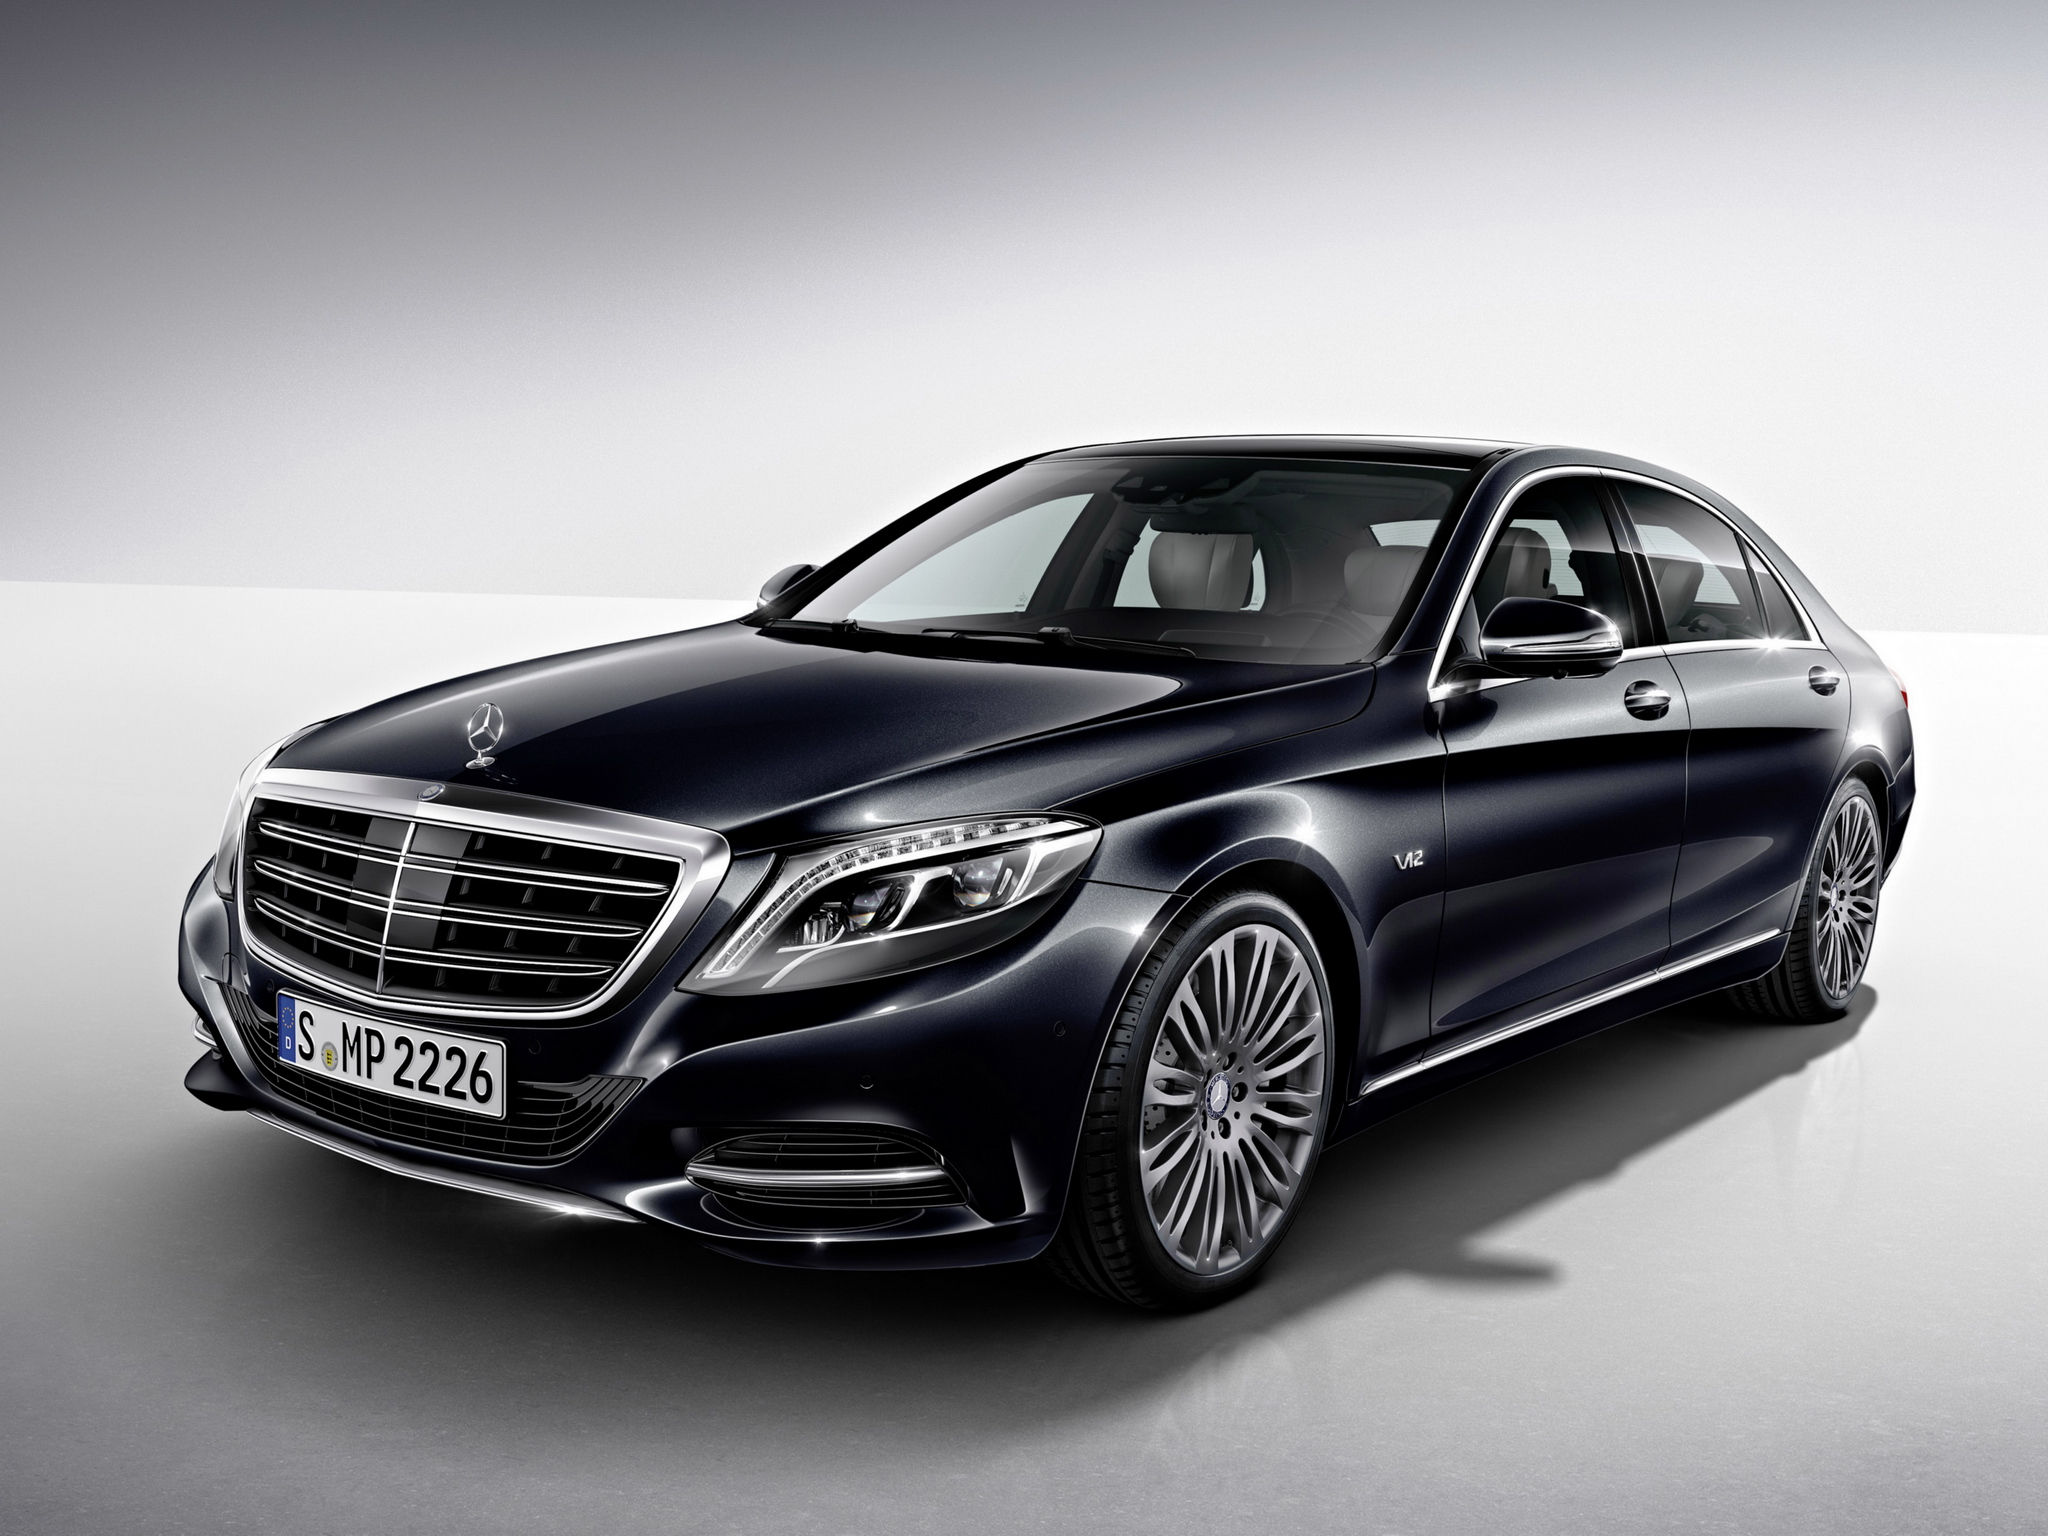 2014 mercedes benz s600 w222 luxury h wallpaper